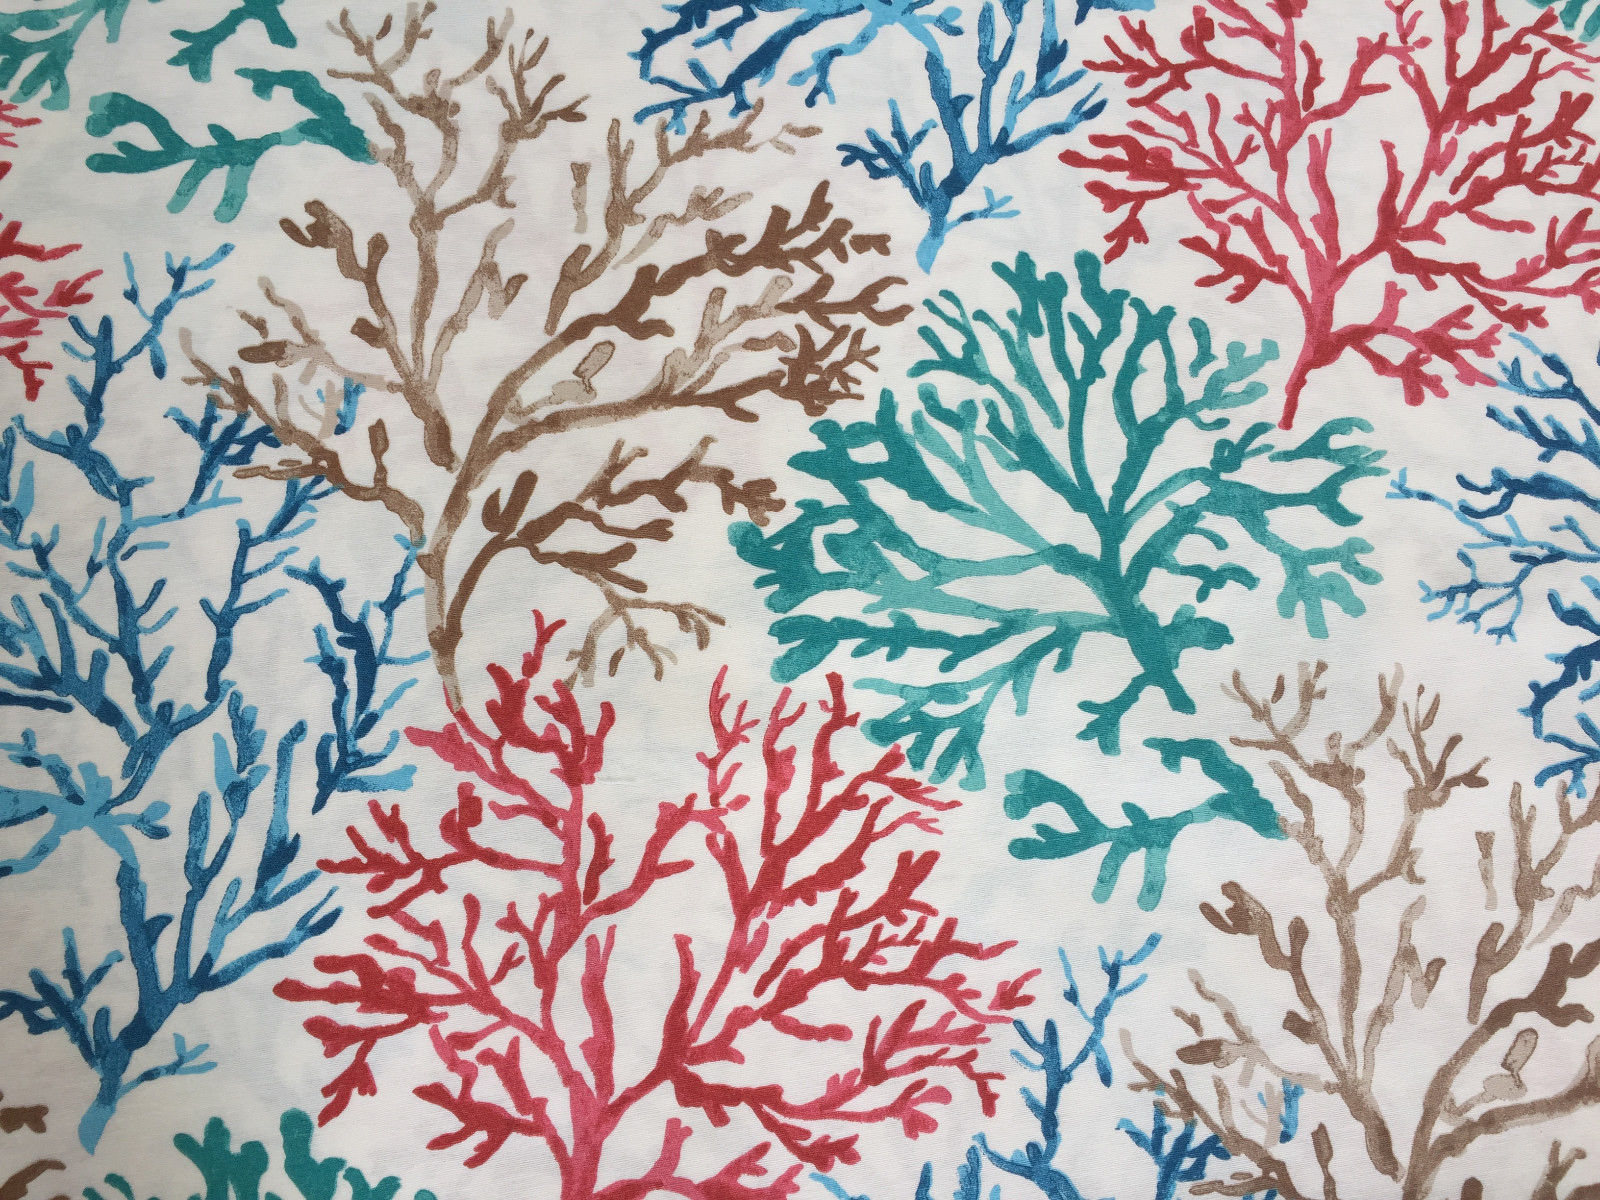 BLUE CORAL REEF Fabric Curtain Upholstery Cotton Material Sea Teal, Blue, Red Corals -140cm Wide